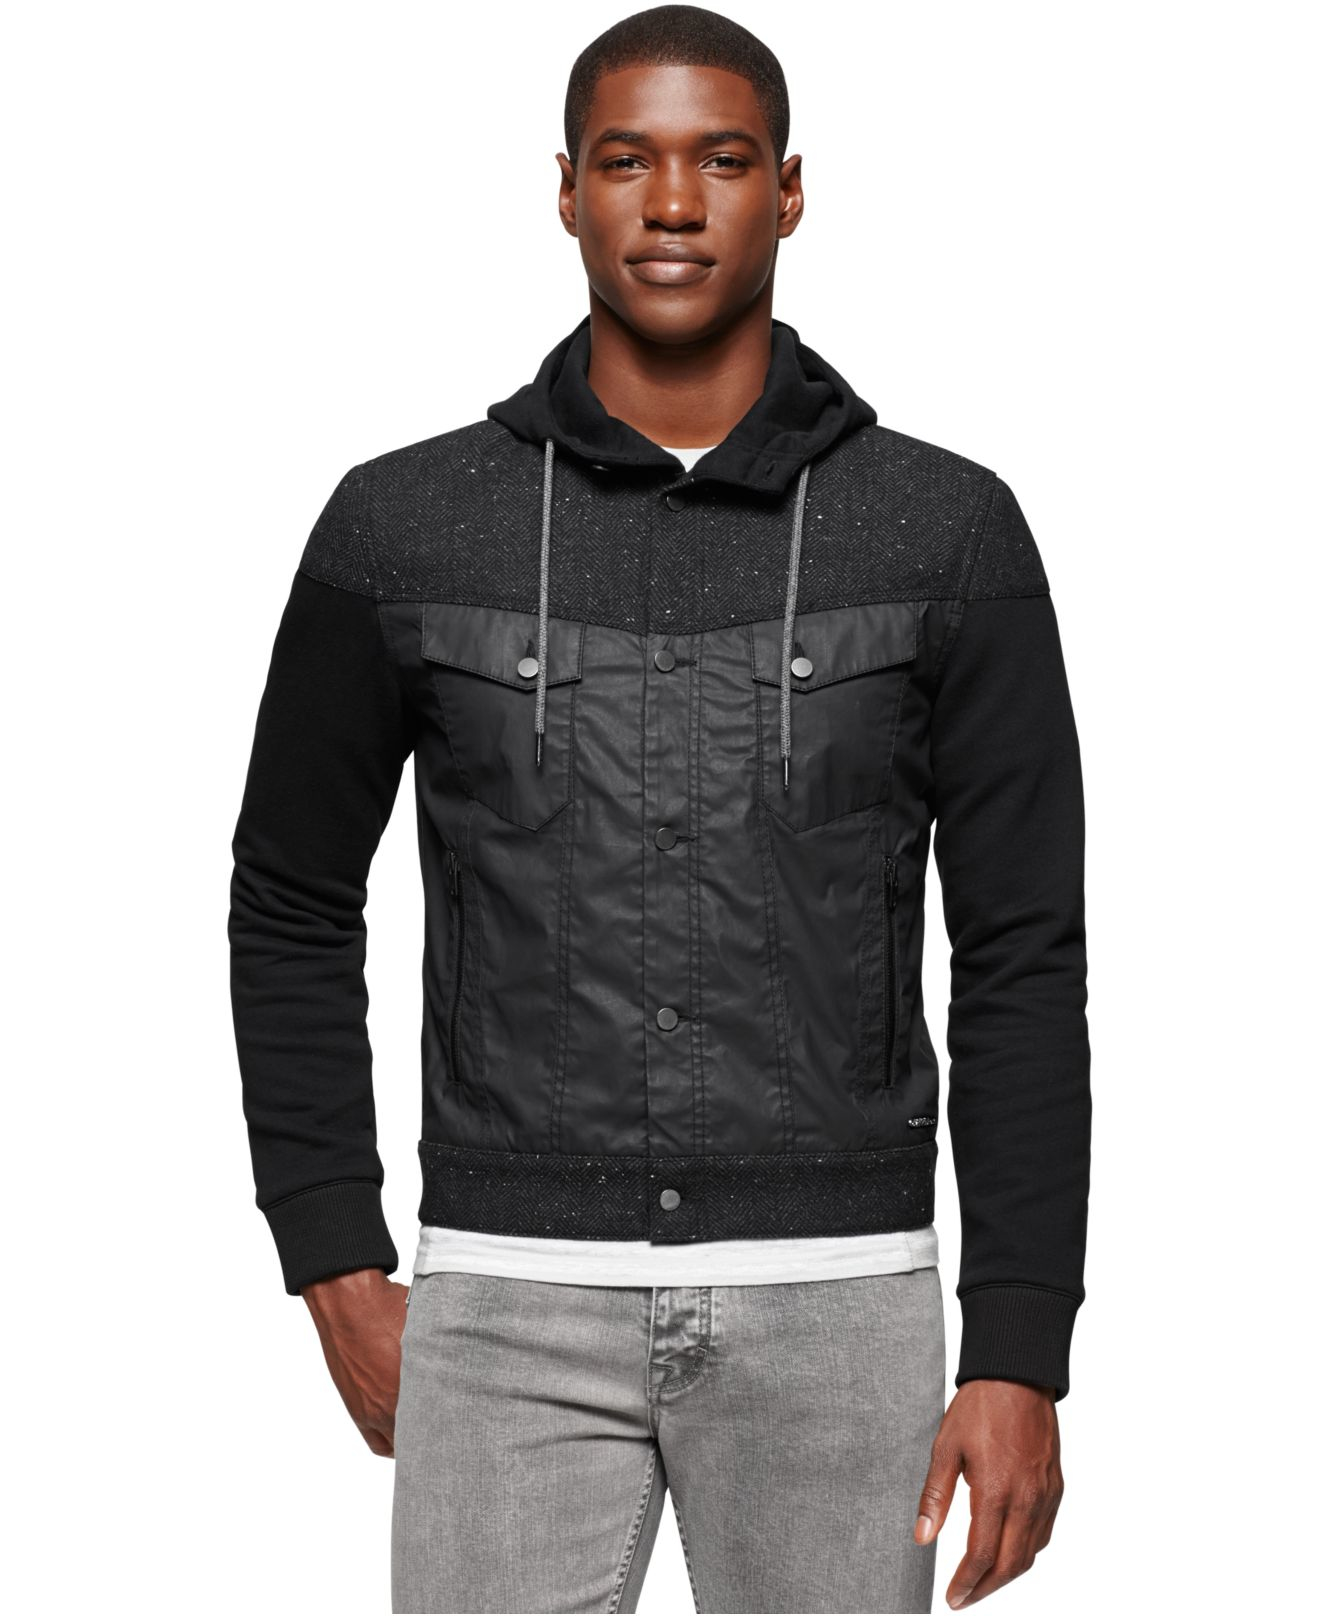 lyst calvin klein jeans mixed media hoodie in black for men. Black Bedroom Furniture Sets. Home Design Ideas